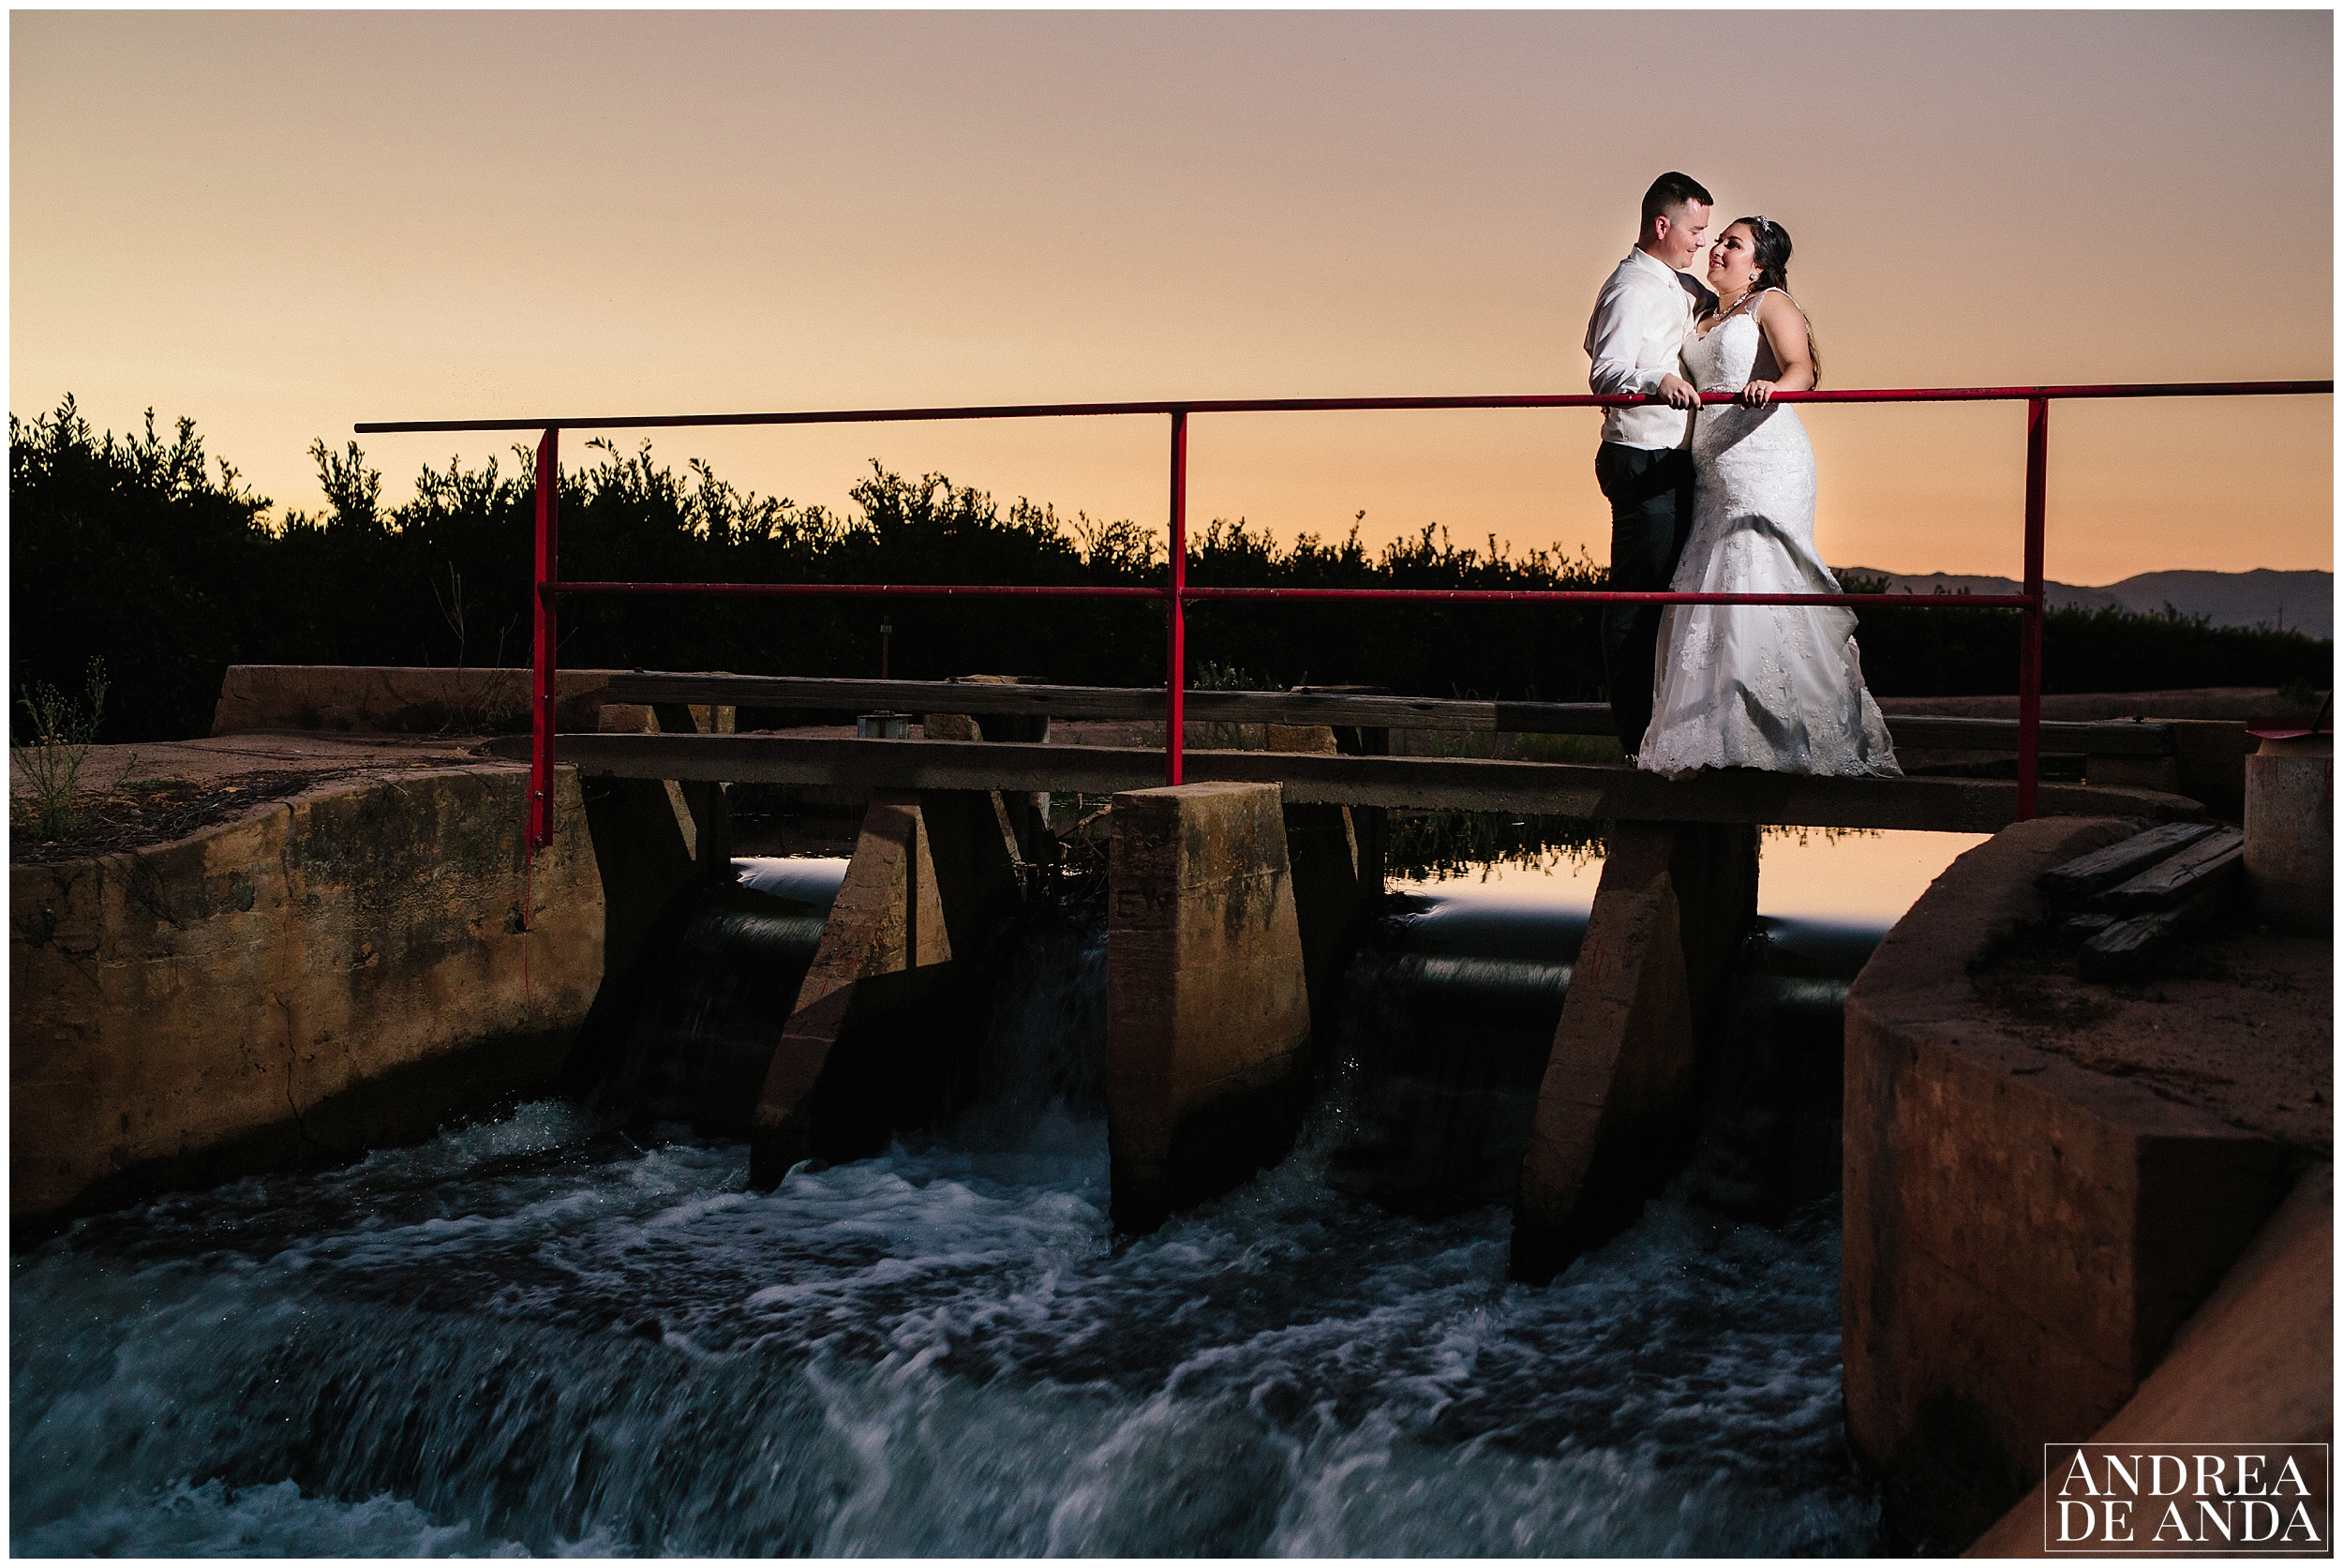 Bride and Groom creative portraits, Sunset Portraits at bridge above running water.